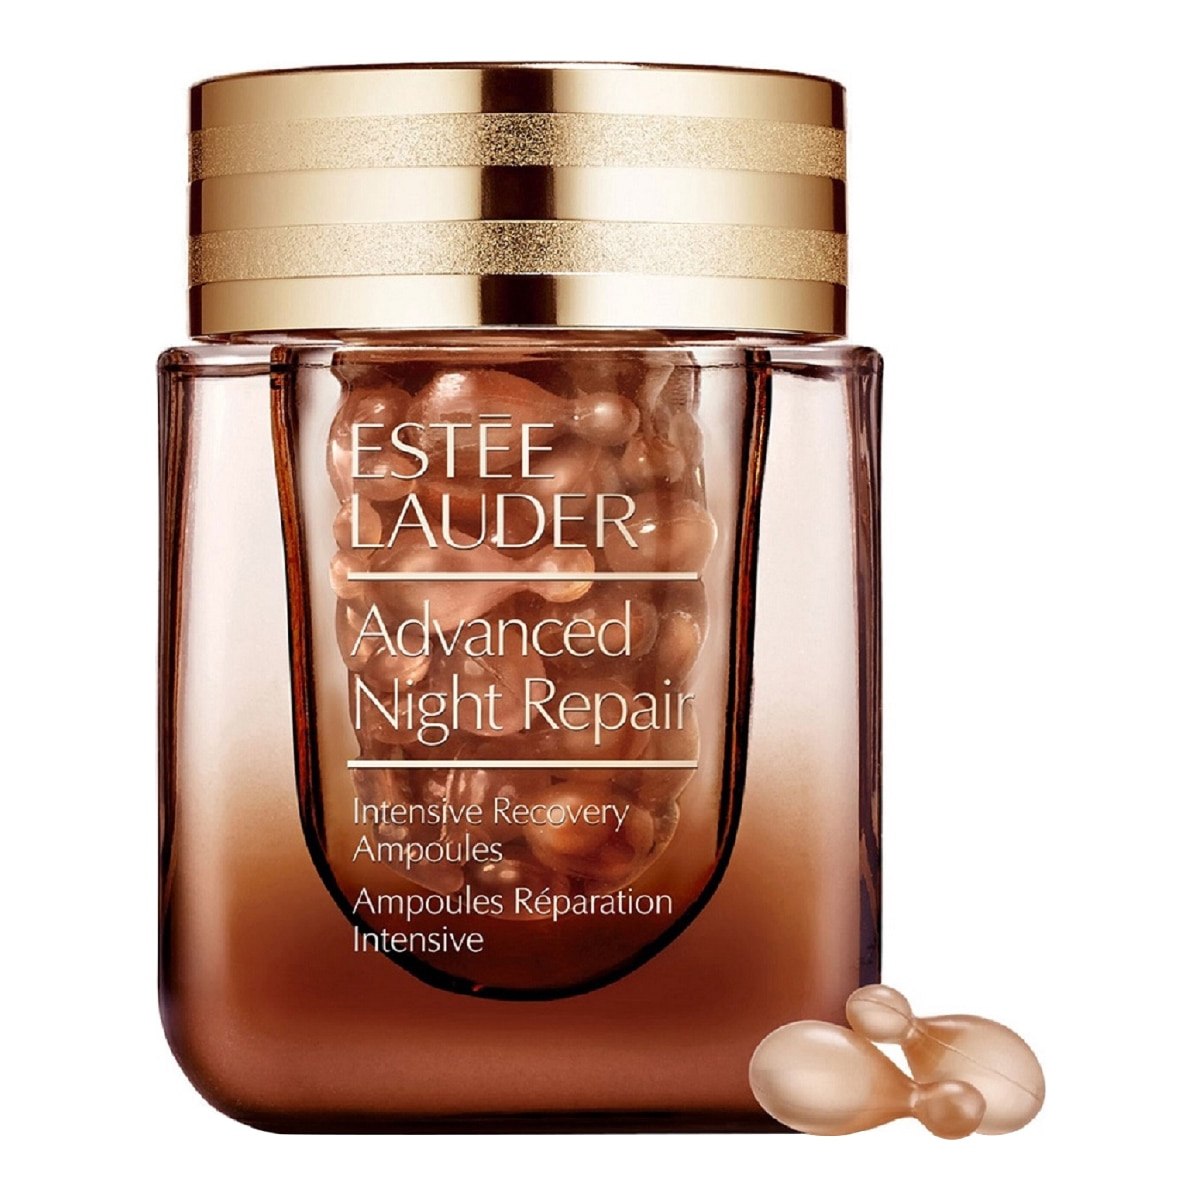 Estée Lauder ADVANCED NIGHT REPAIR, Ampoules Réparation Intensives